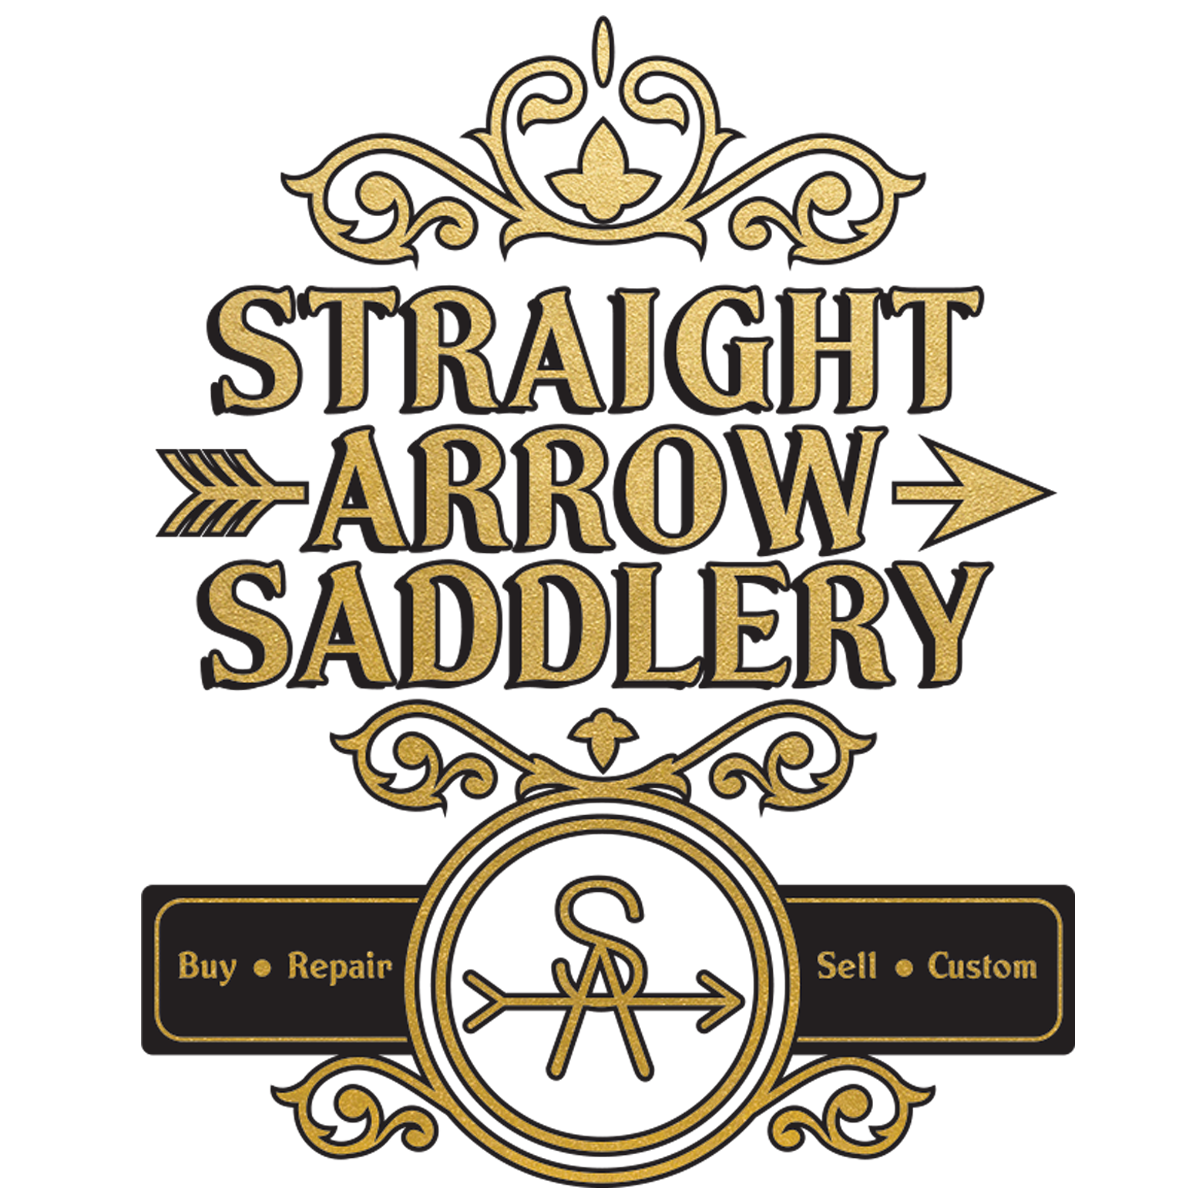 Straight Arrow Saddlery